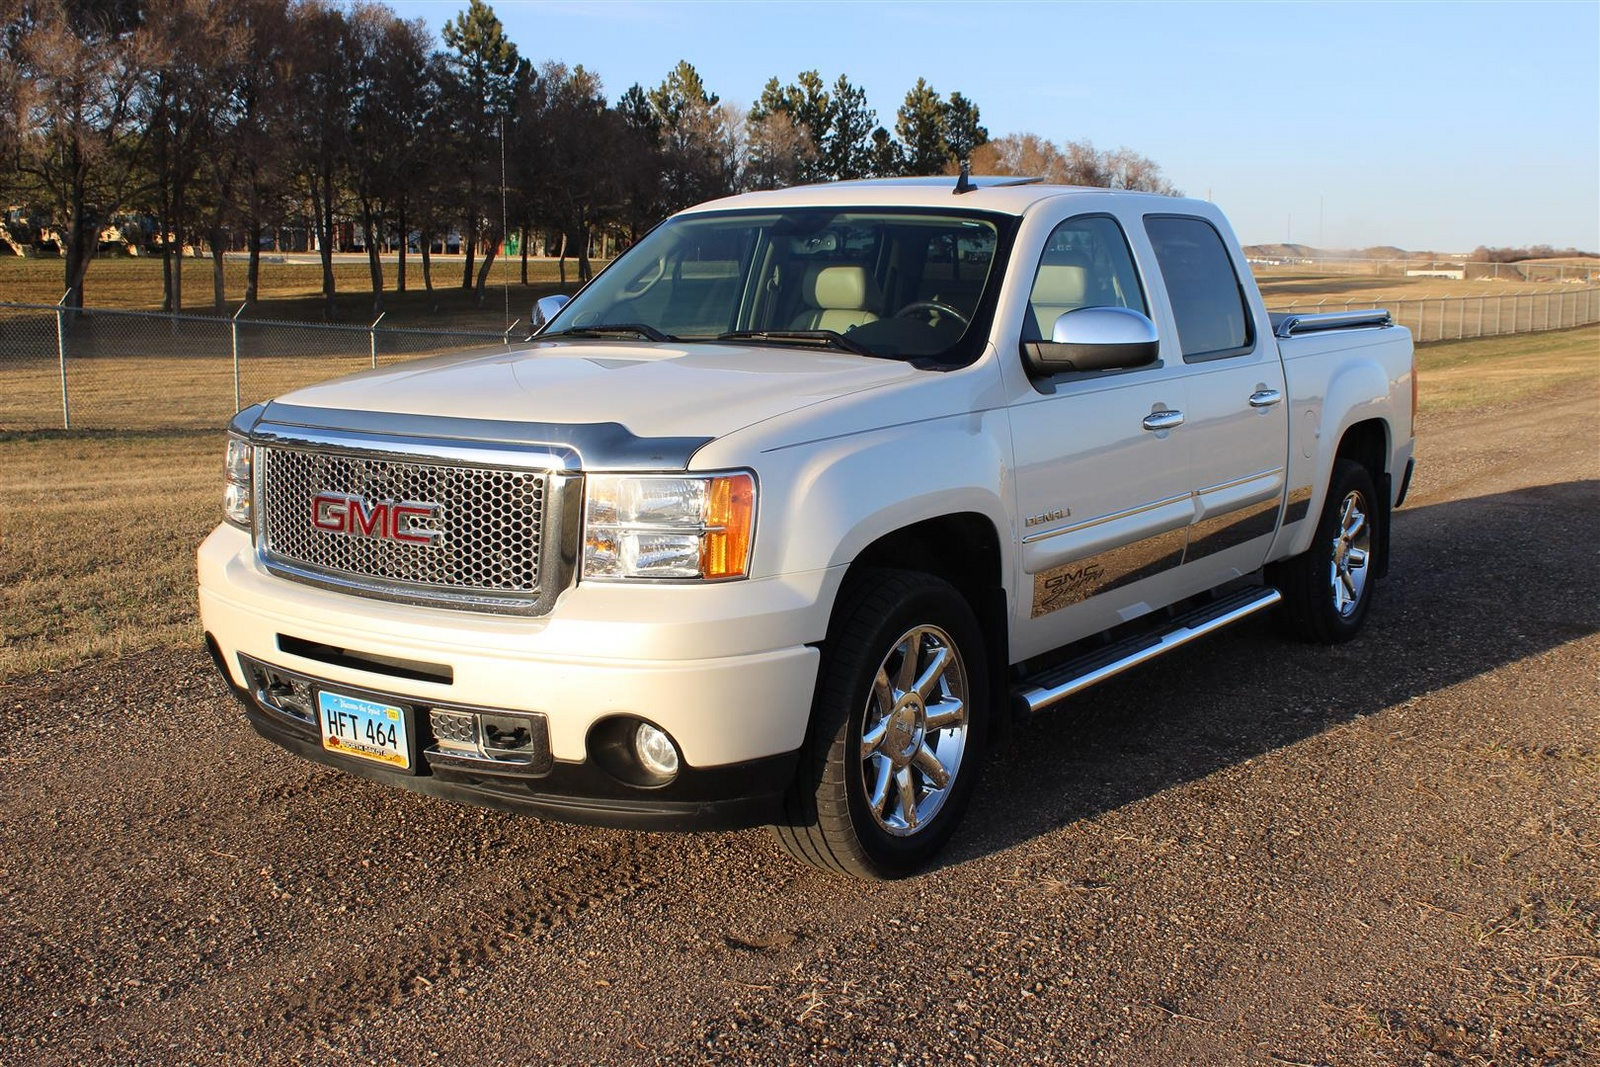 2011 gmc sierra 1500 review and prices iguida user autos post. Black Bedroom Furniture Sets. Home Design Ideas